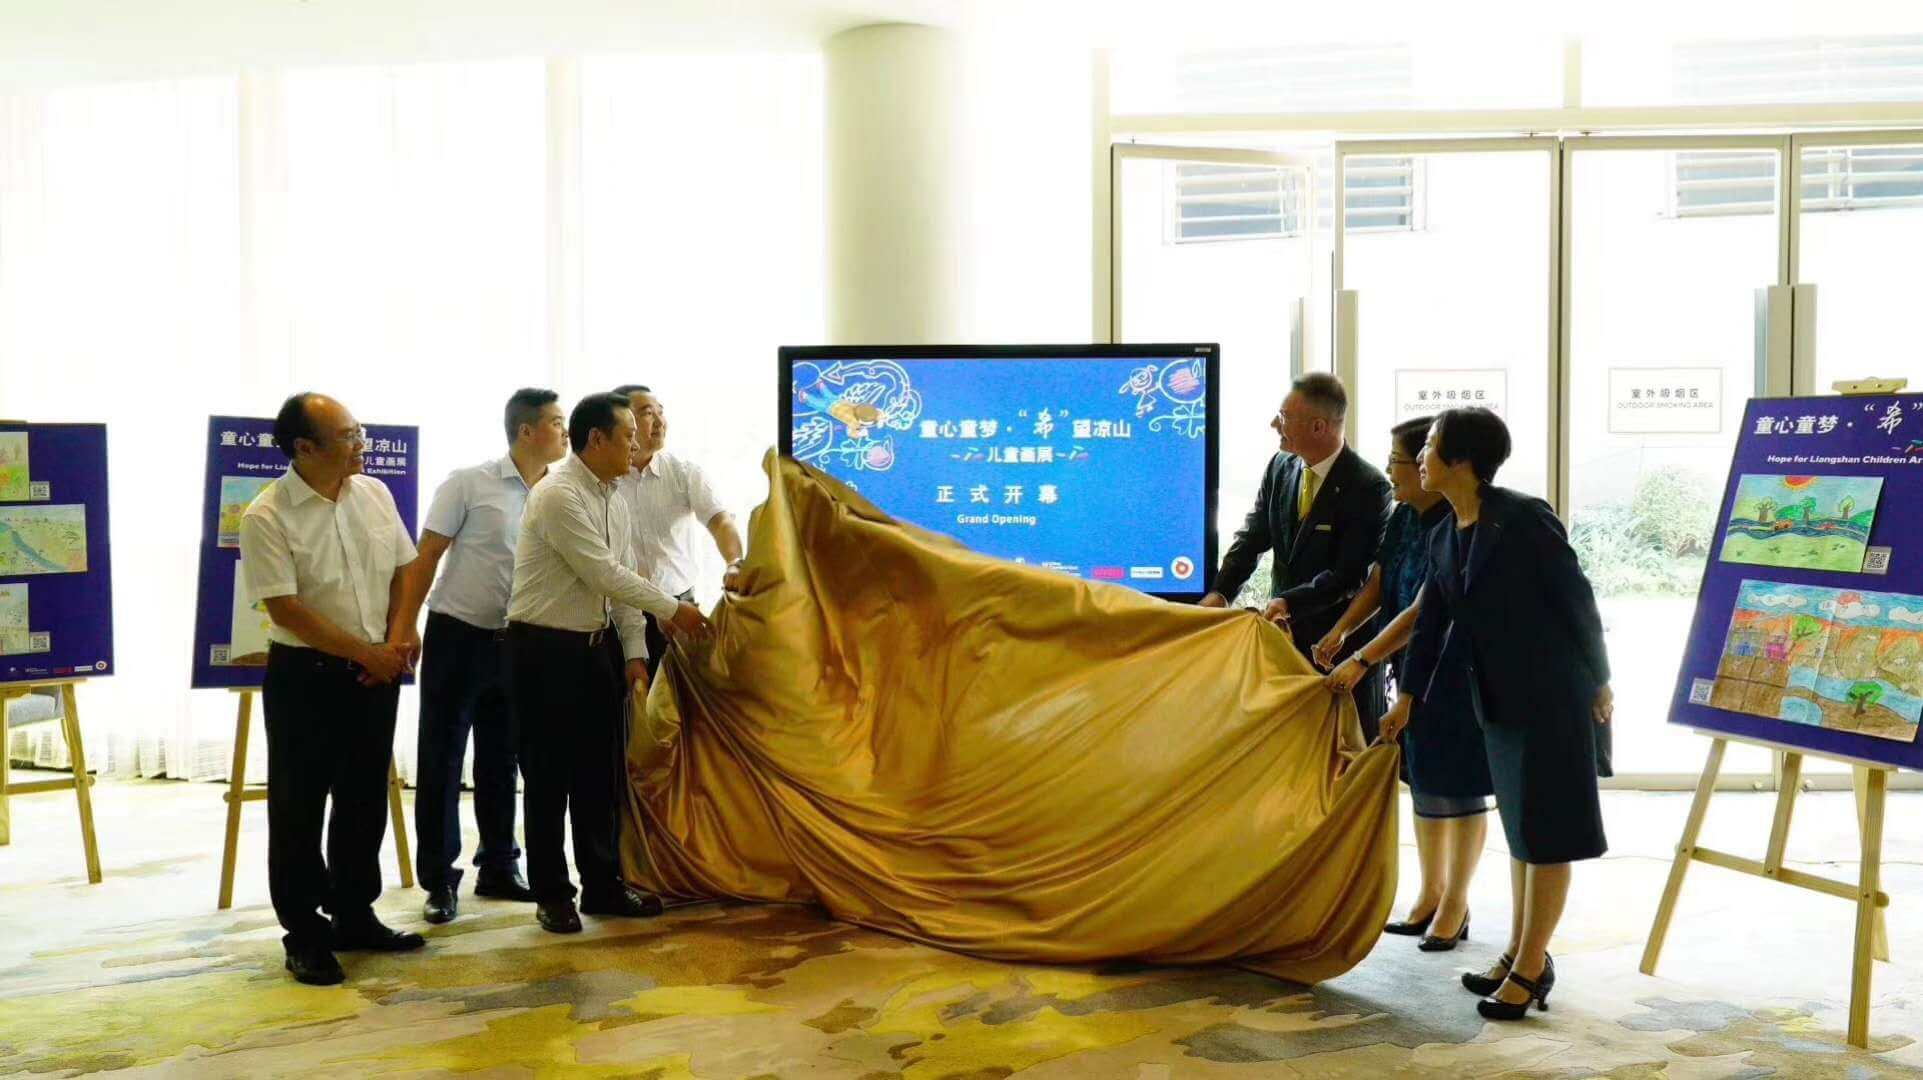 IQ Working with Hilton Hotel and XHEF with Liangshan children Art Exhibition